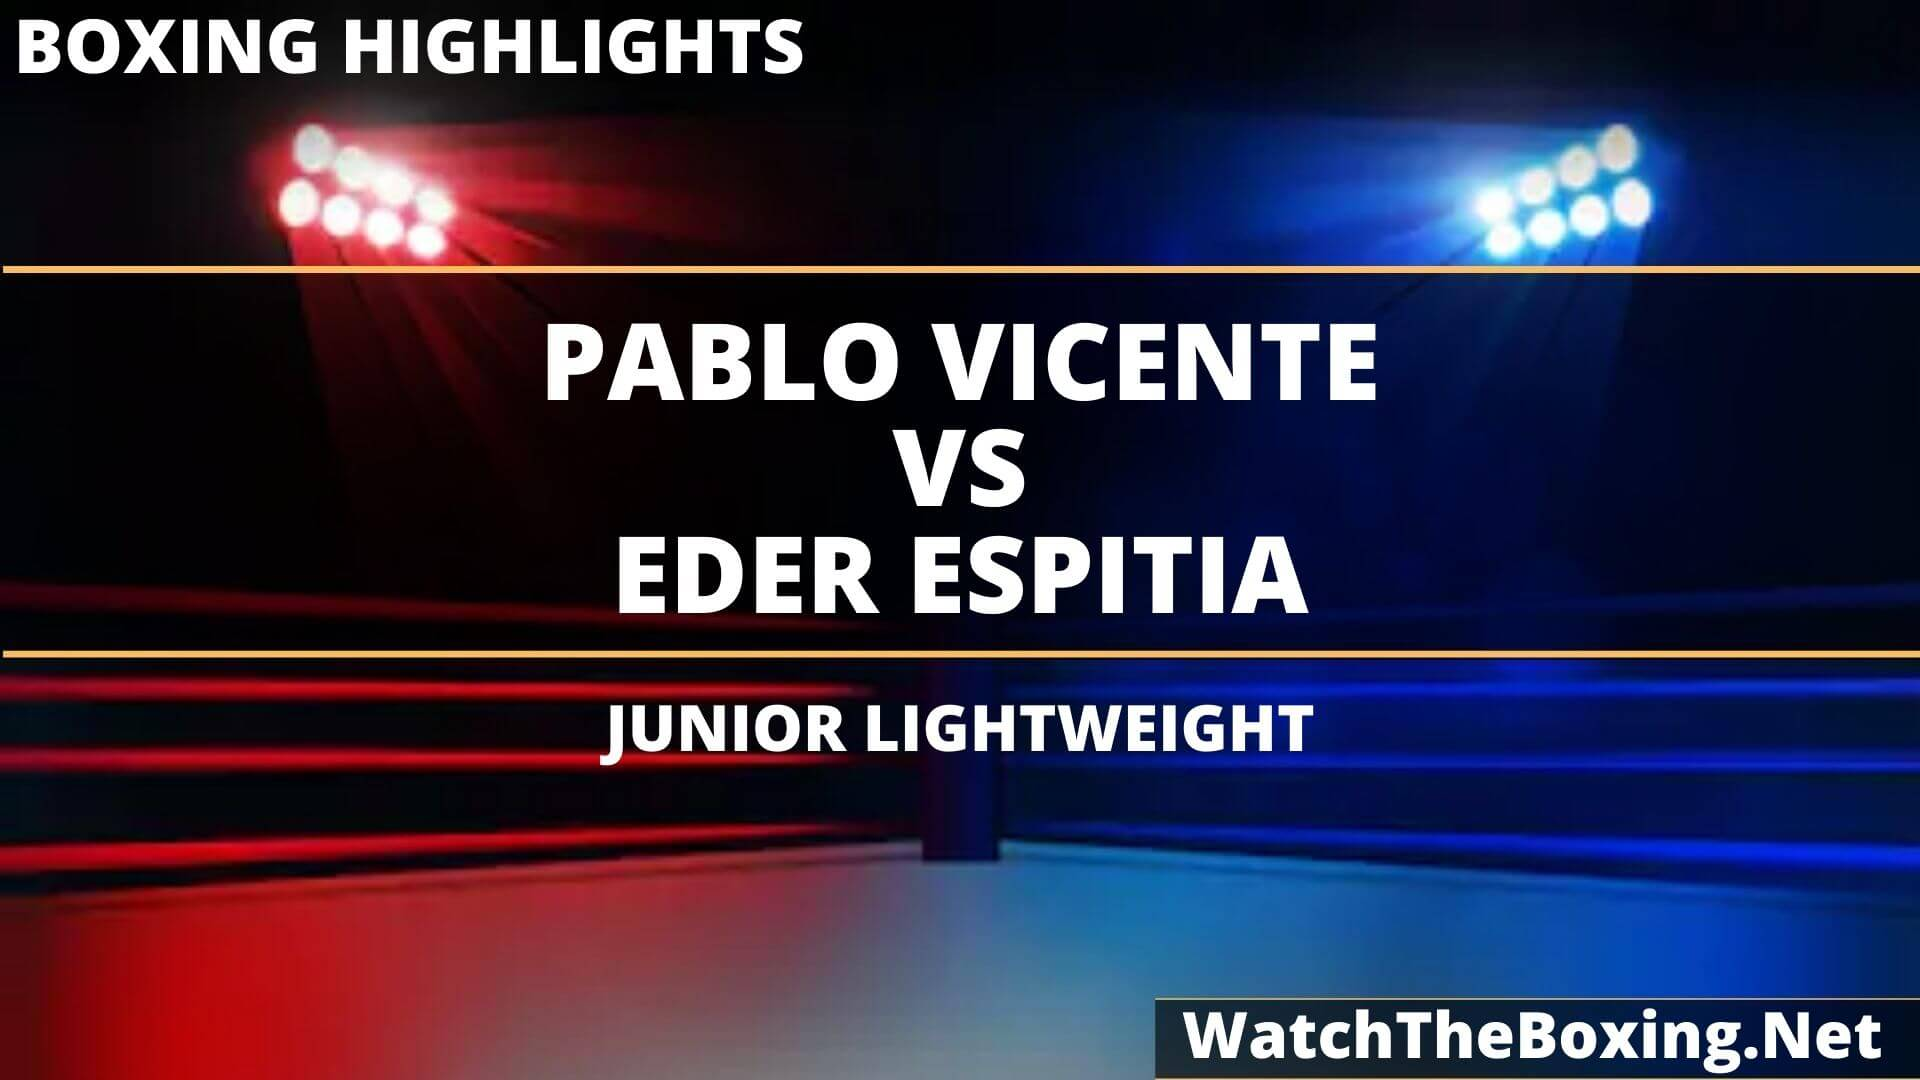 Pablo Vicente Vs Eder Espitia Highlights 2020